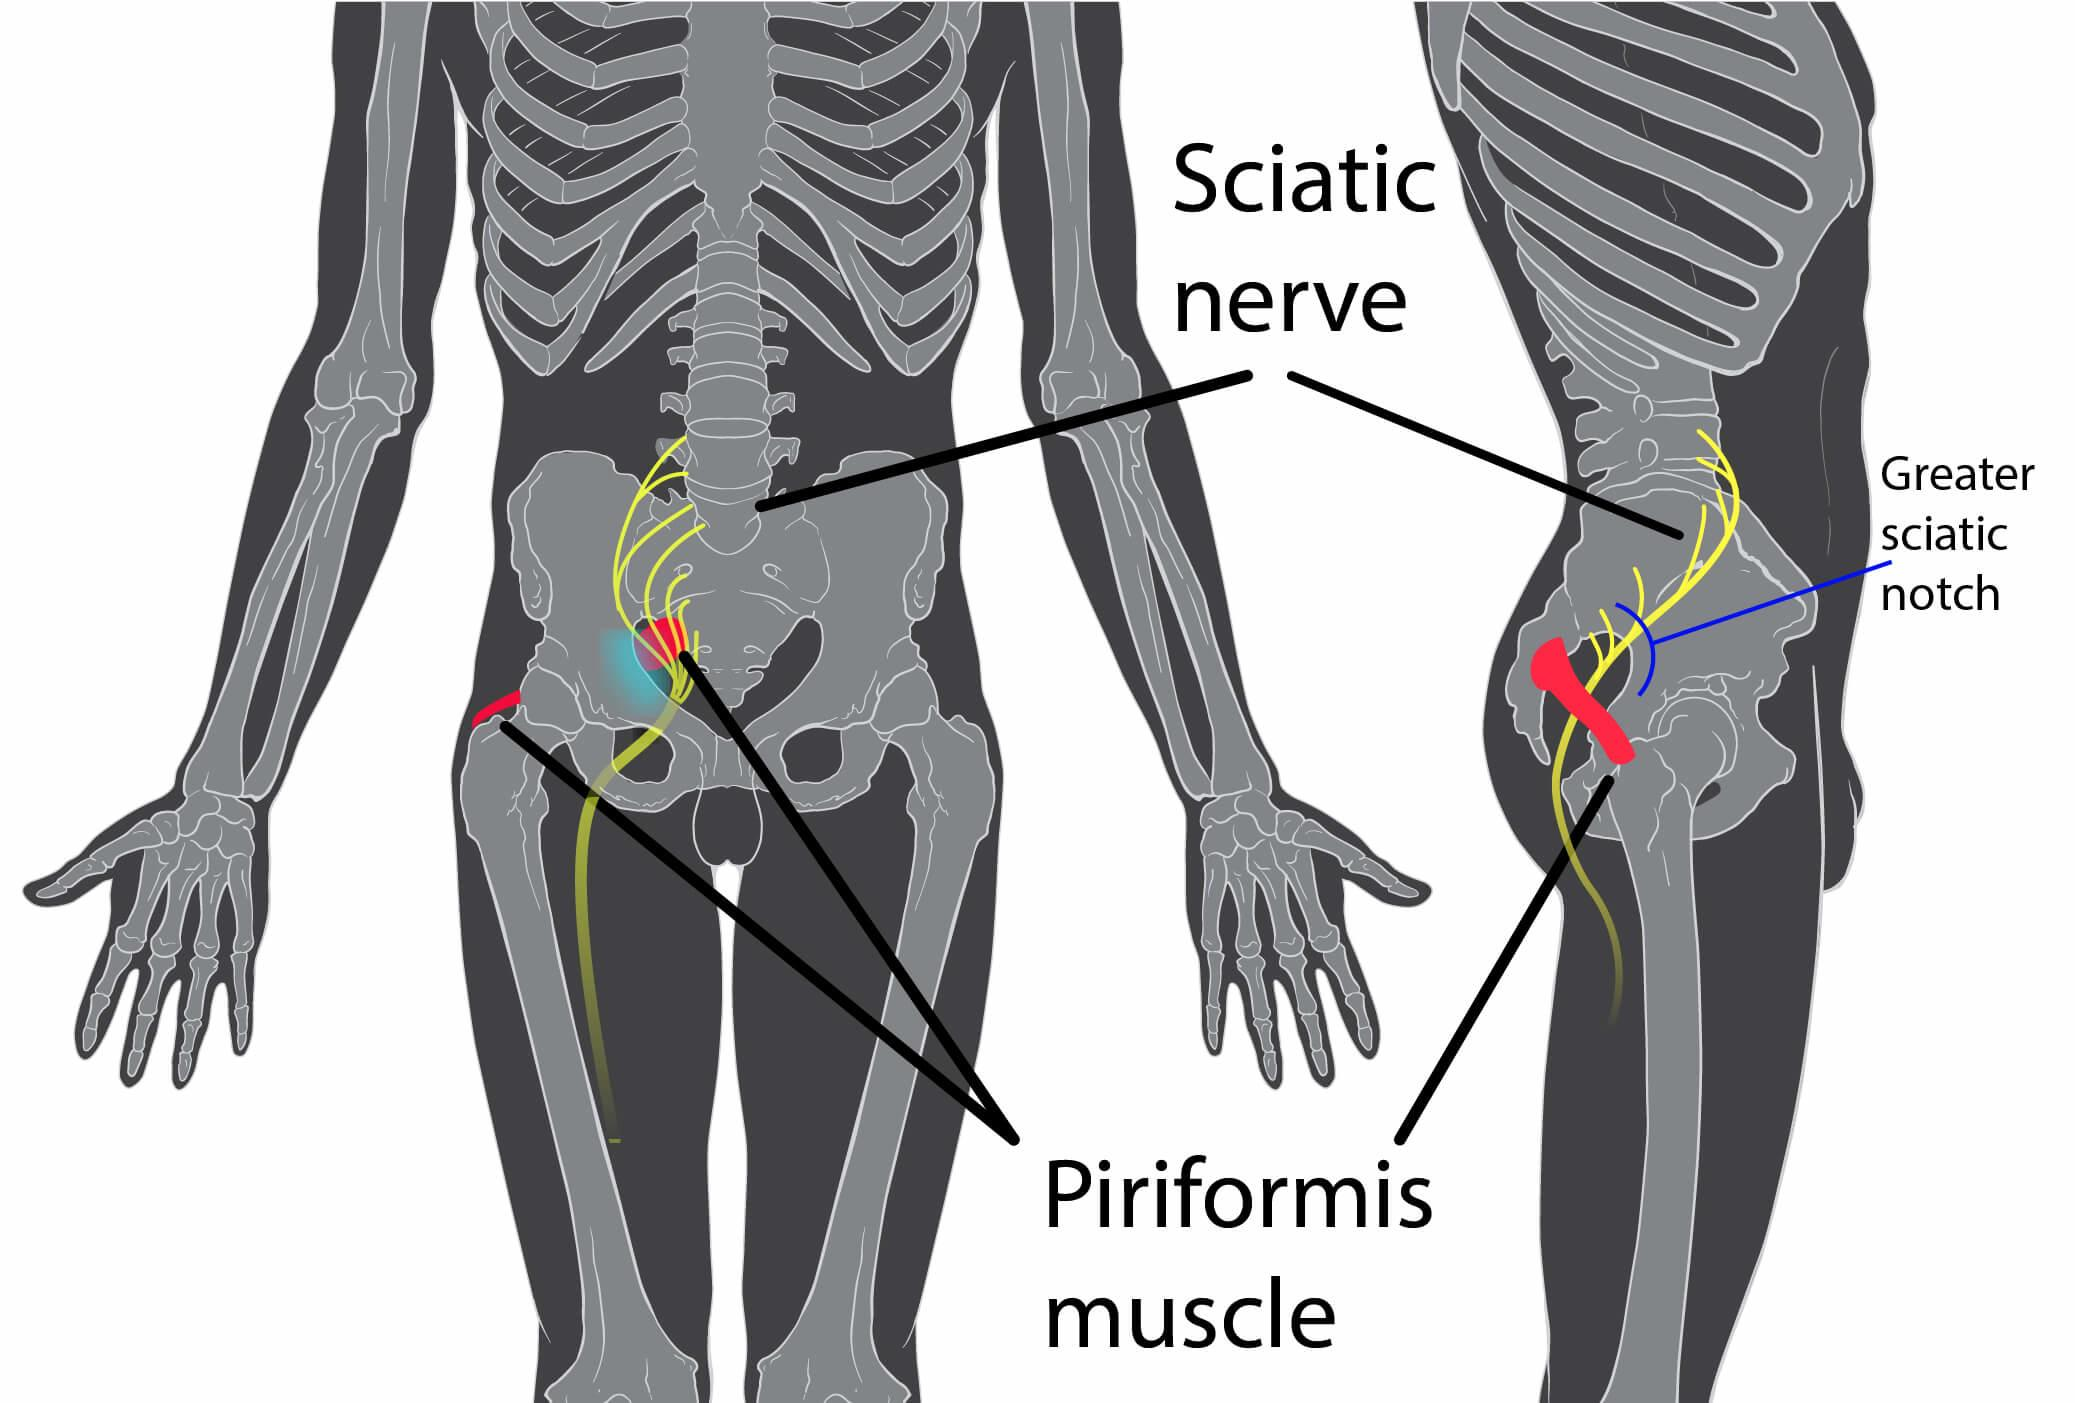 Piriformis from the runners angle signs symptoms prevention piriformis syndrome sciatic nerve publicscrutiny Images